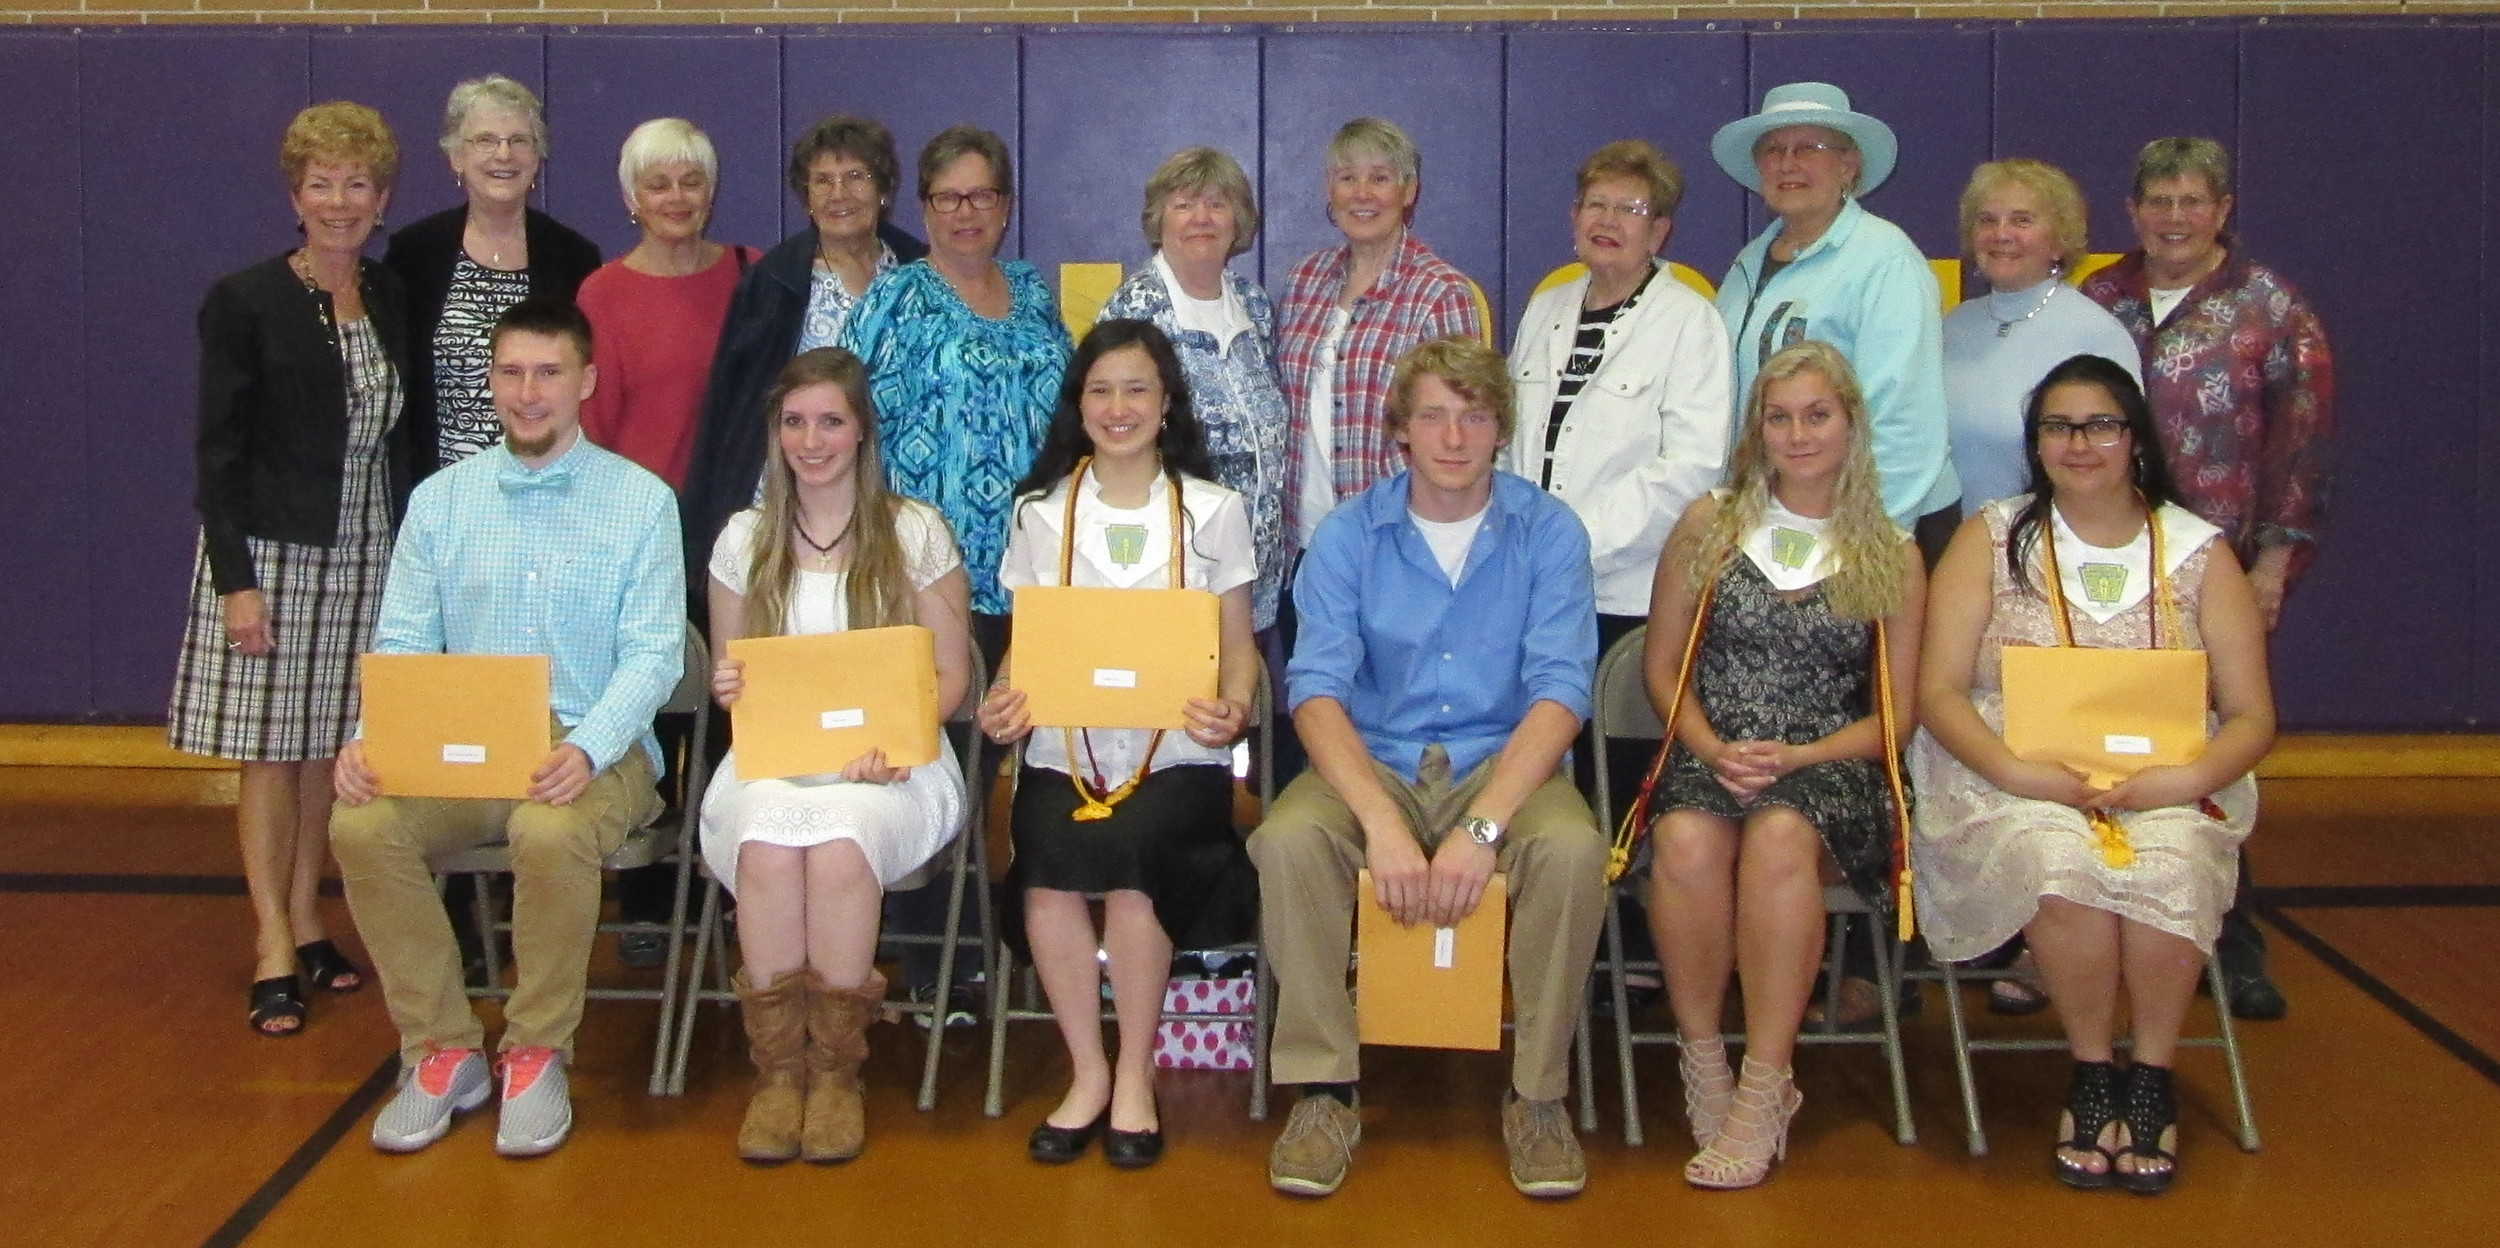 The Pentwater Women's Club awarded $9000 in scholarships to six  graduating seniors on Monday, May 23rd during the school's Honors  Assembly.  Students receiving scholarships, seated left to right, are Jacob Emick-Free, Sarah Jewett, Sophia Nyborg, Connor Patterson, Emily Gebhart and Chyanne Smith.                                                                              They were joined by Pentwater Women's Club members, back row left to right, Norma Oly, Nancy Mertes, Treasurer Janet Nelson, Elaine Bell, Deborah Atchetee, President Sally Ouweneel, Deborah Leishman, Juanita Pierman, Ways & Means Chairperson Vicki Poplstein, Judy Jankowski, and Scholarship Chairperson Kathy Davis.